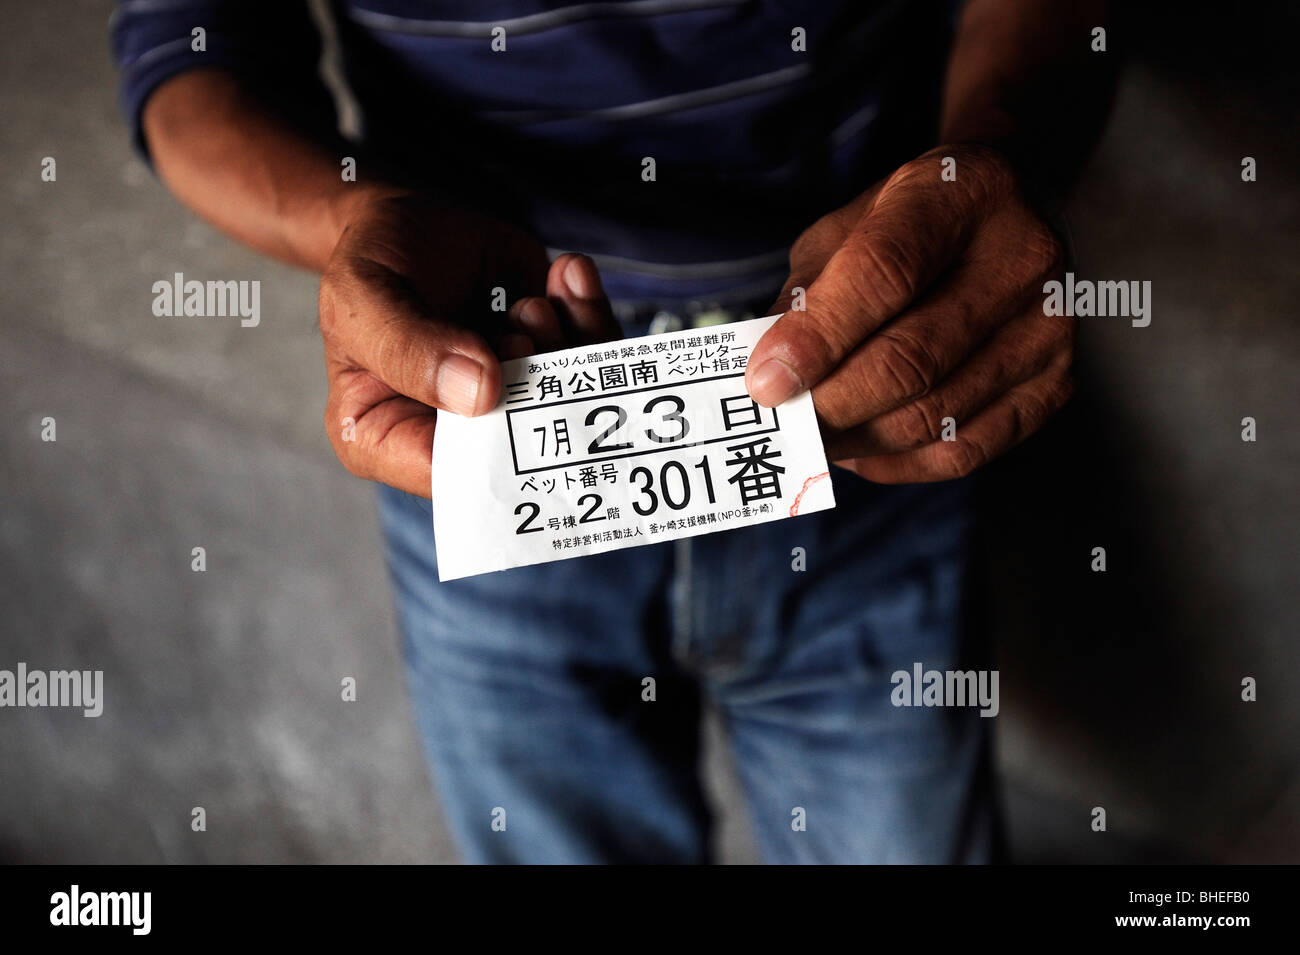 'Koji' Yamaguchi, a day laborer who has no fixed abode of residence, shows the ticket he received indicating - Stock Image